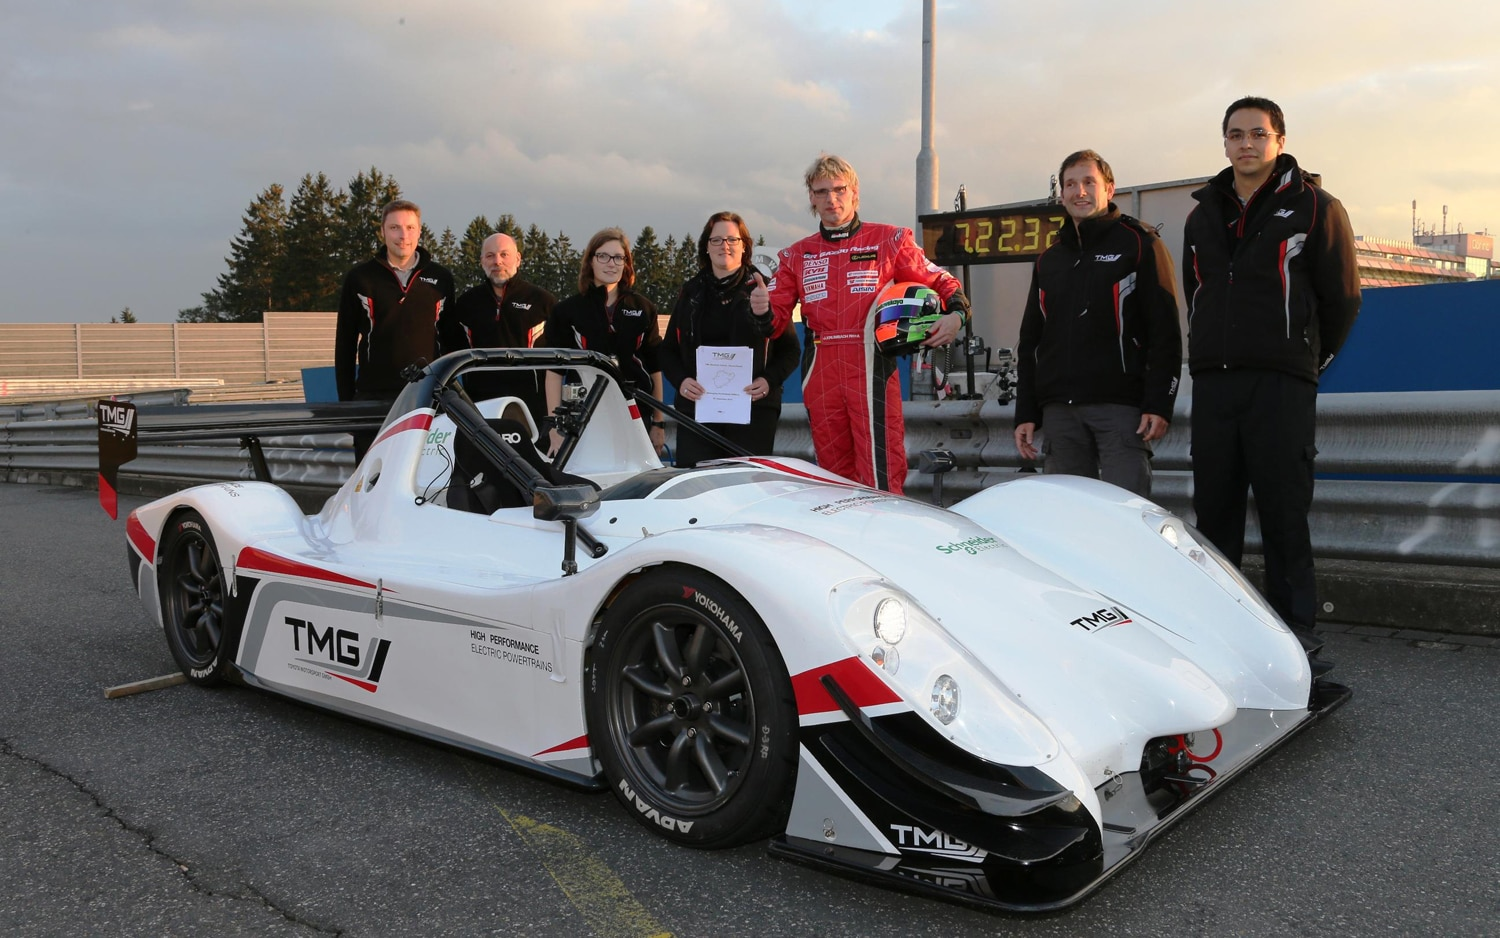 Toyota TMG EV P002 With Team1